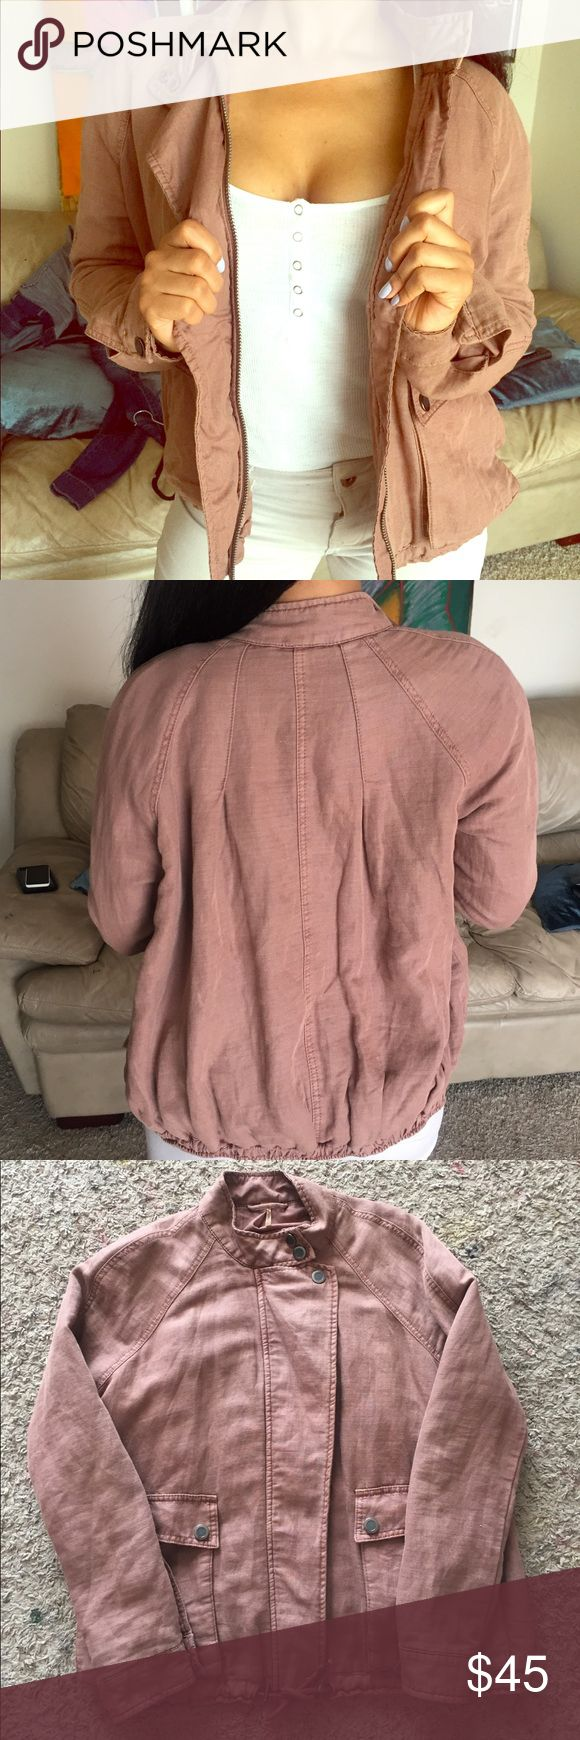 FREE PEOPLE JACKET dusty rose pink bomber utility Worn just a few times, great condition. Free People Jackets & Coats Jean Jackets